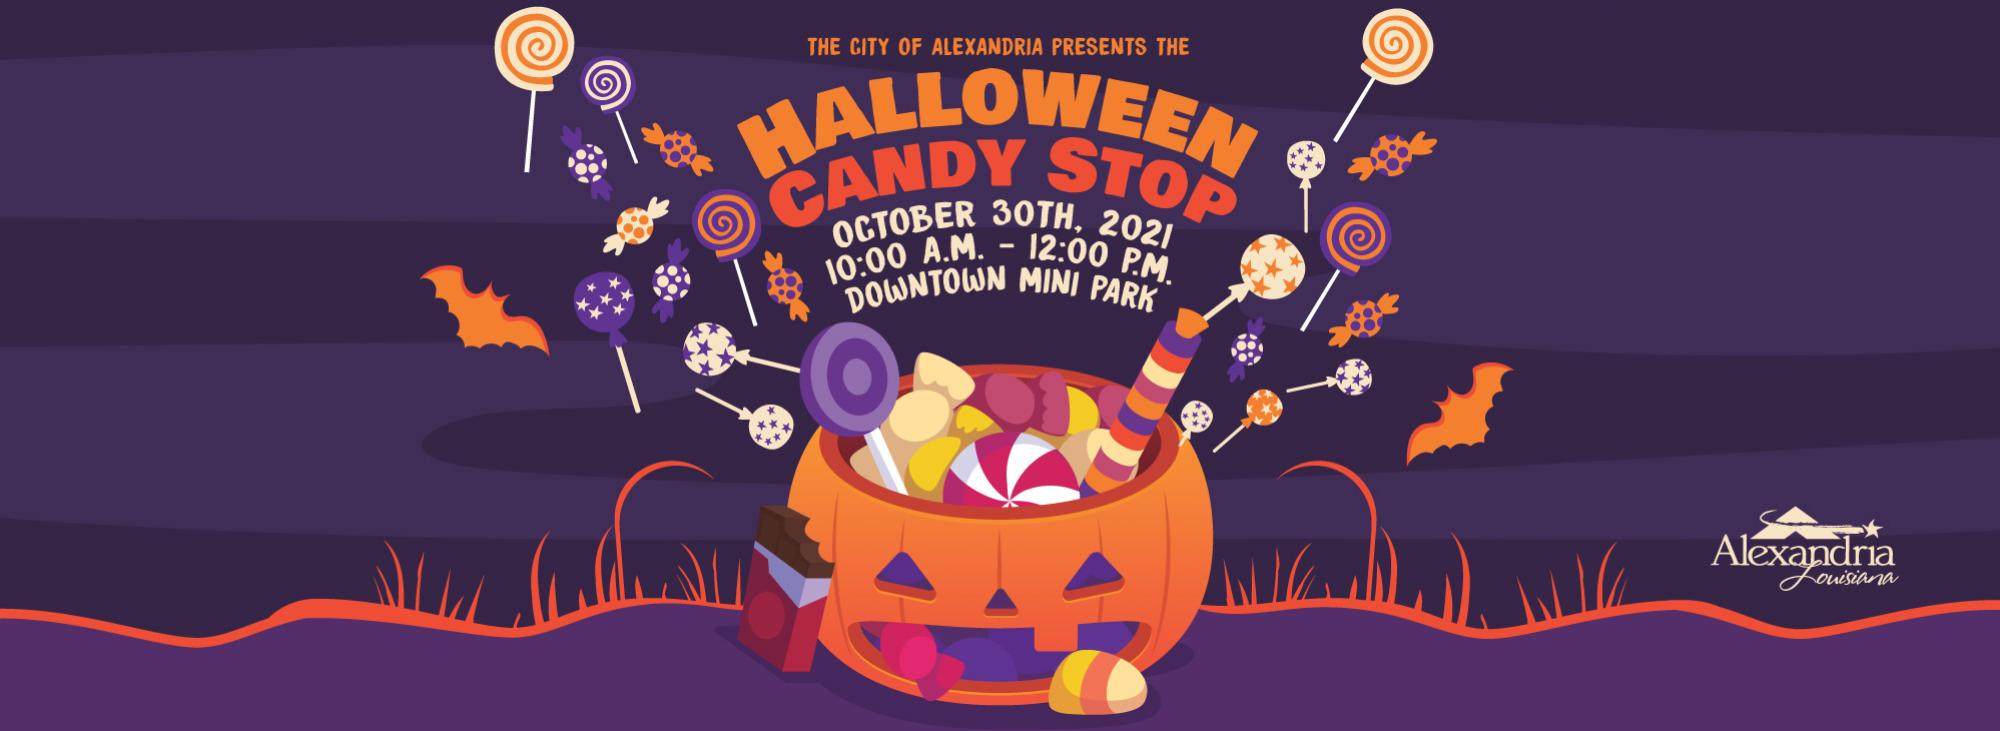 Halloween Candy Stop